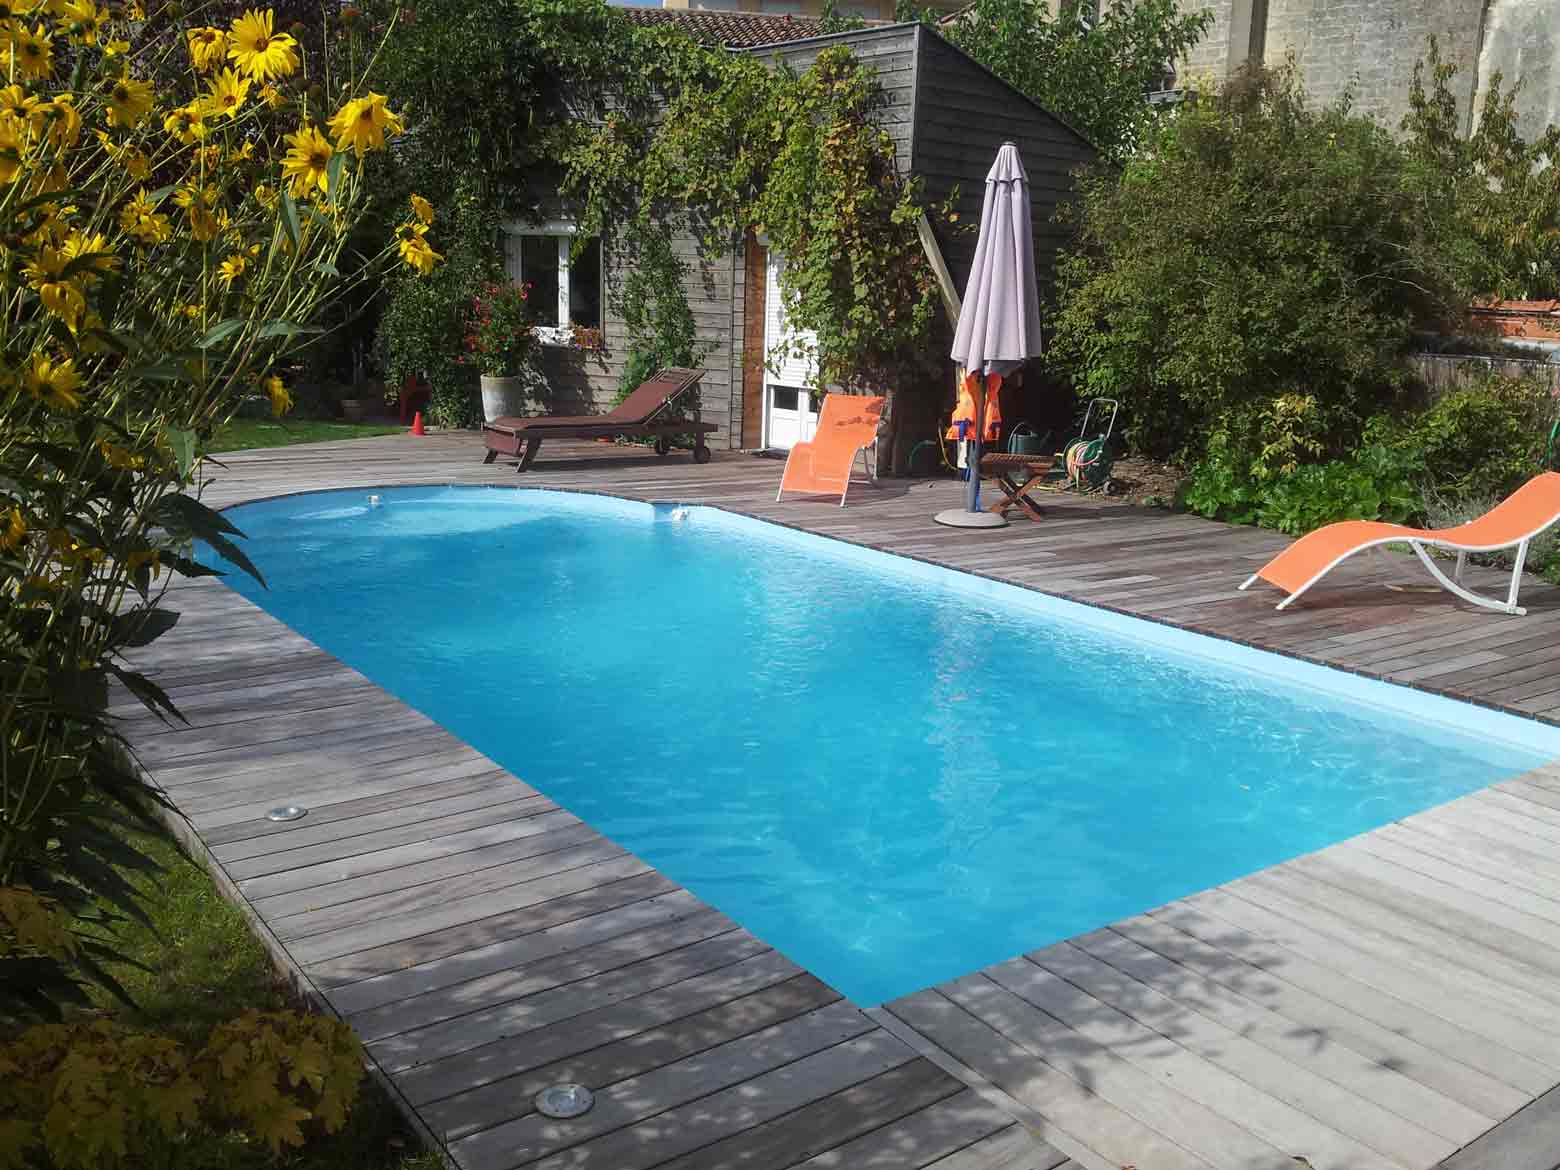 Comment hiverner une piscine coque for Piscine universitaire talence